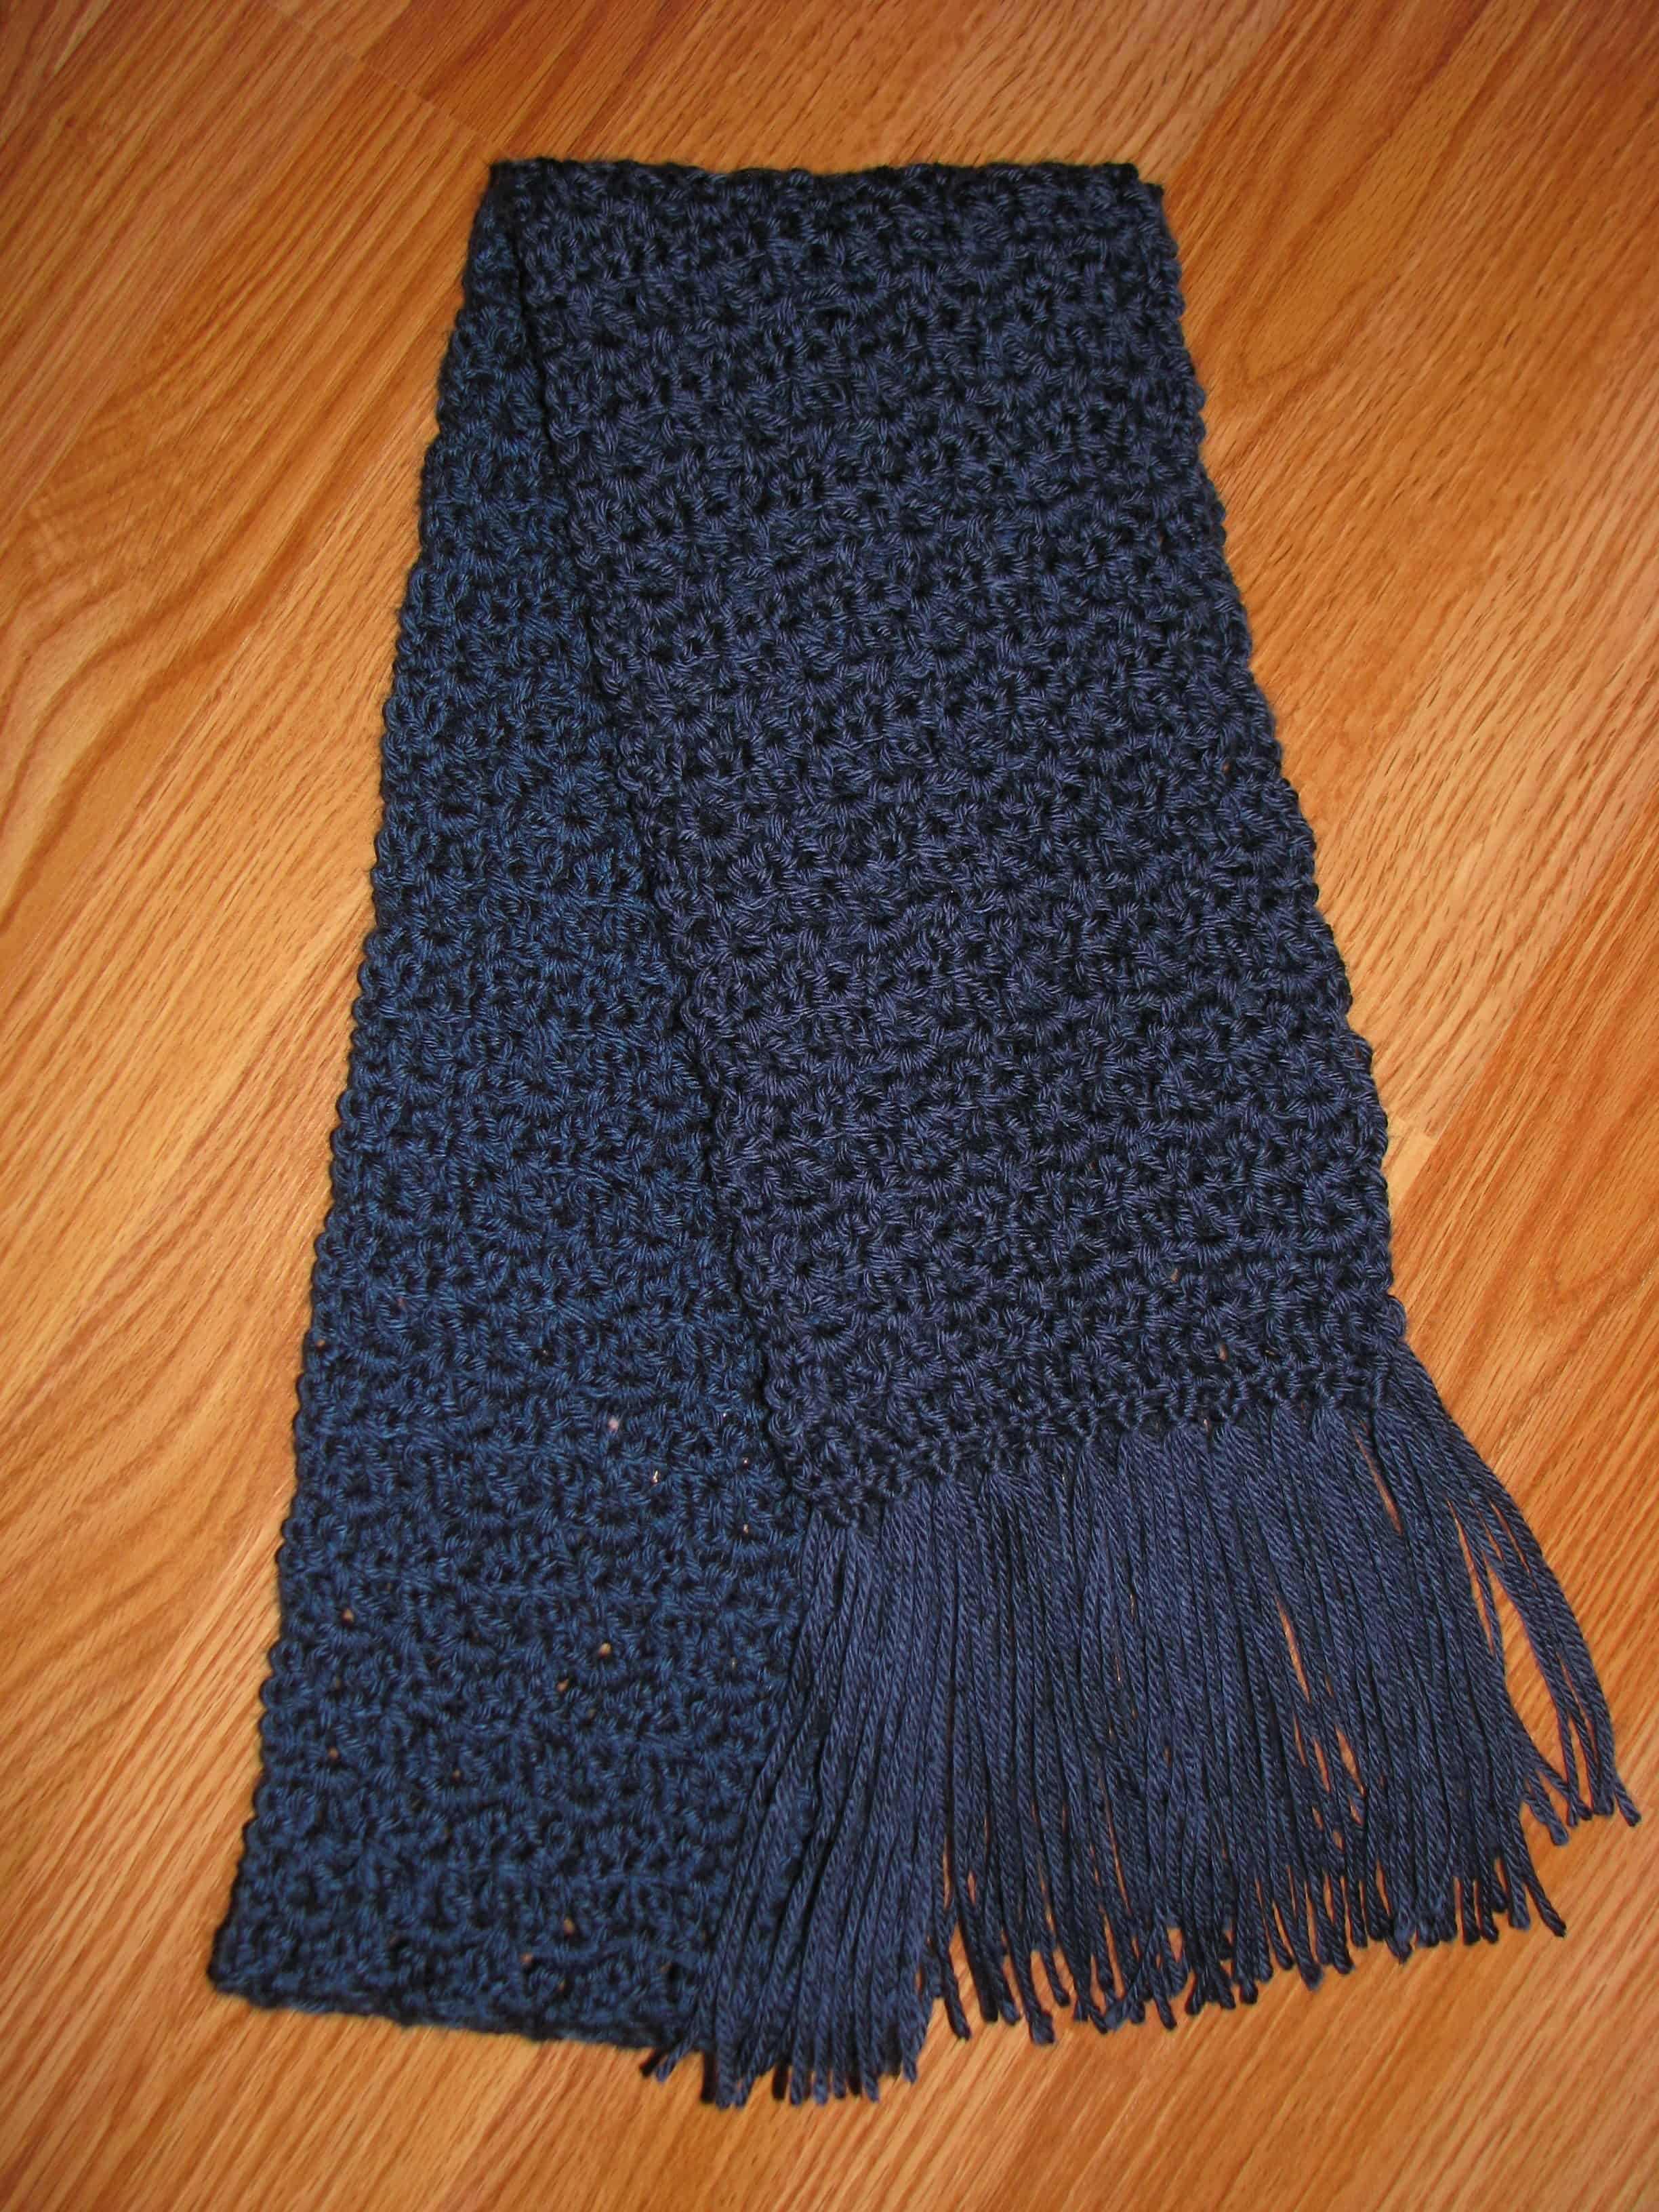 Homemade for the Holidays #23: Lacy Scarf {crochet project}